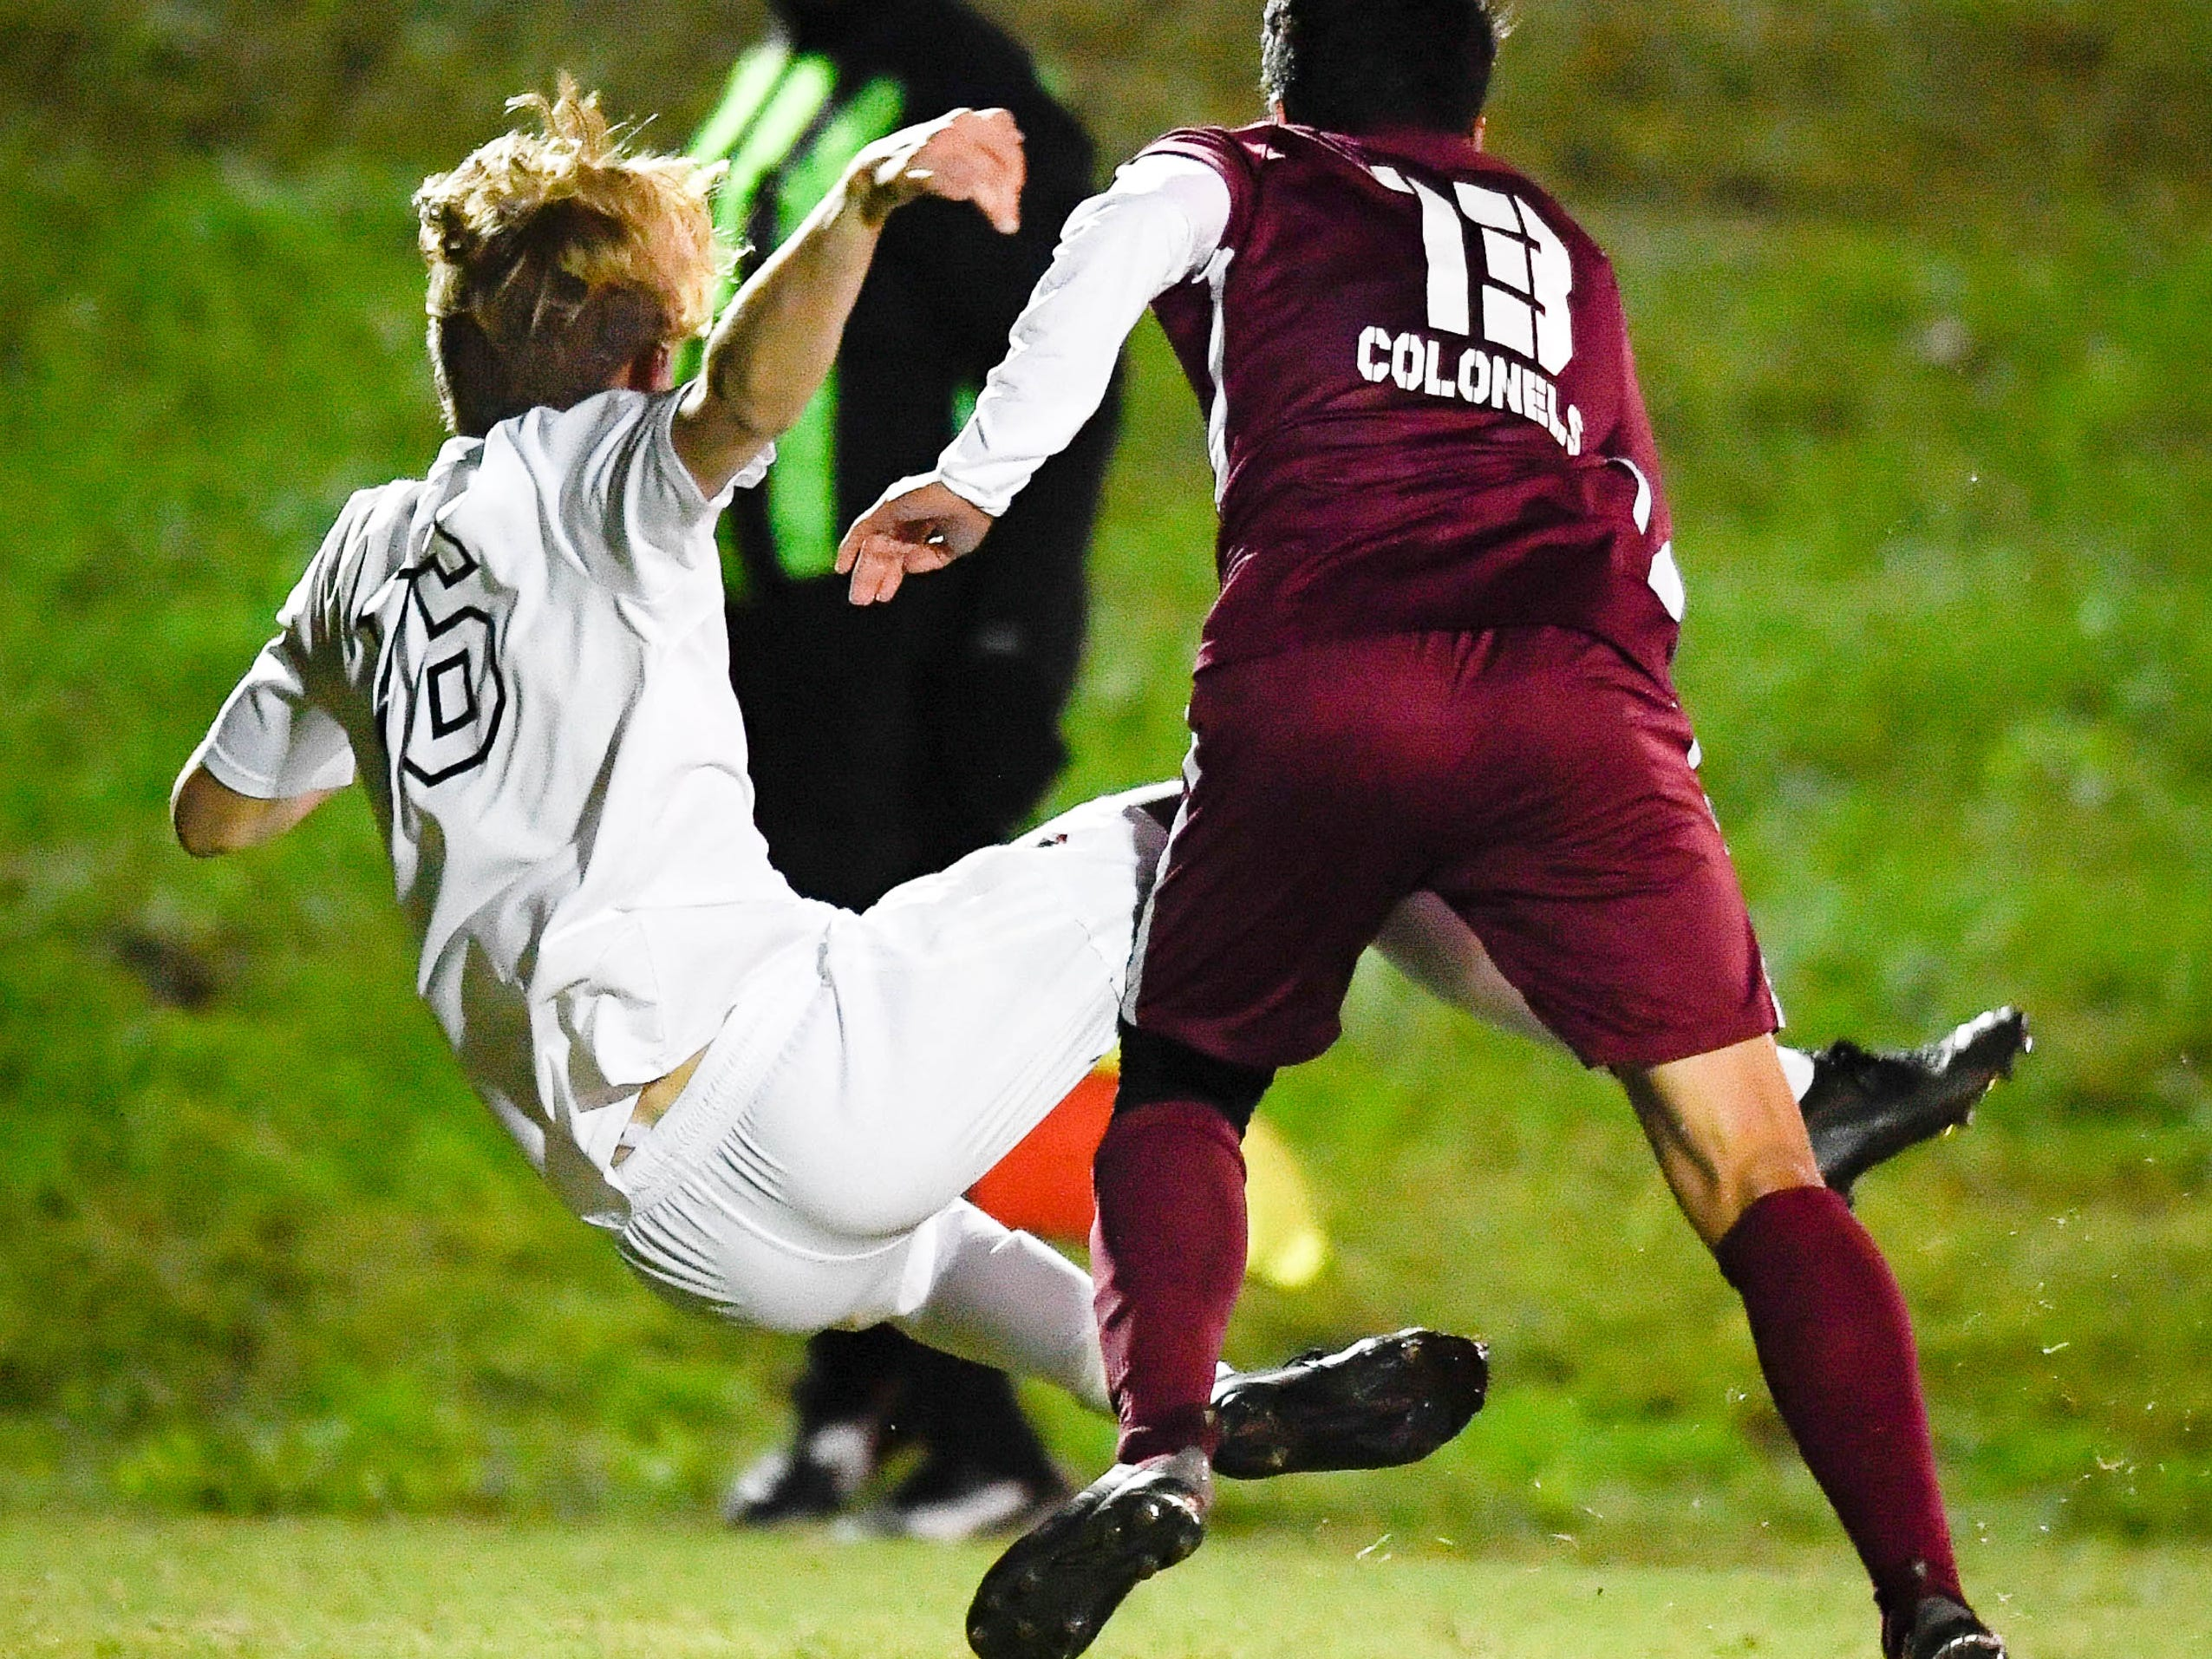 Hopkinsville's Zach Moore (16) and Henderson County's Ed Zeron (13) get tangled up as the Henderson County Colonels play the Hopkinsville Tigers in the regional final at Madisonville-North Hopkins High School Thursday, October 18, 2018.